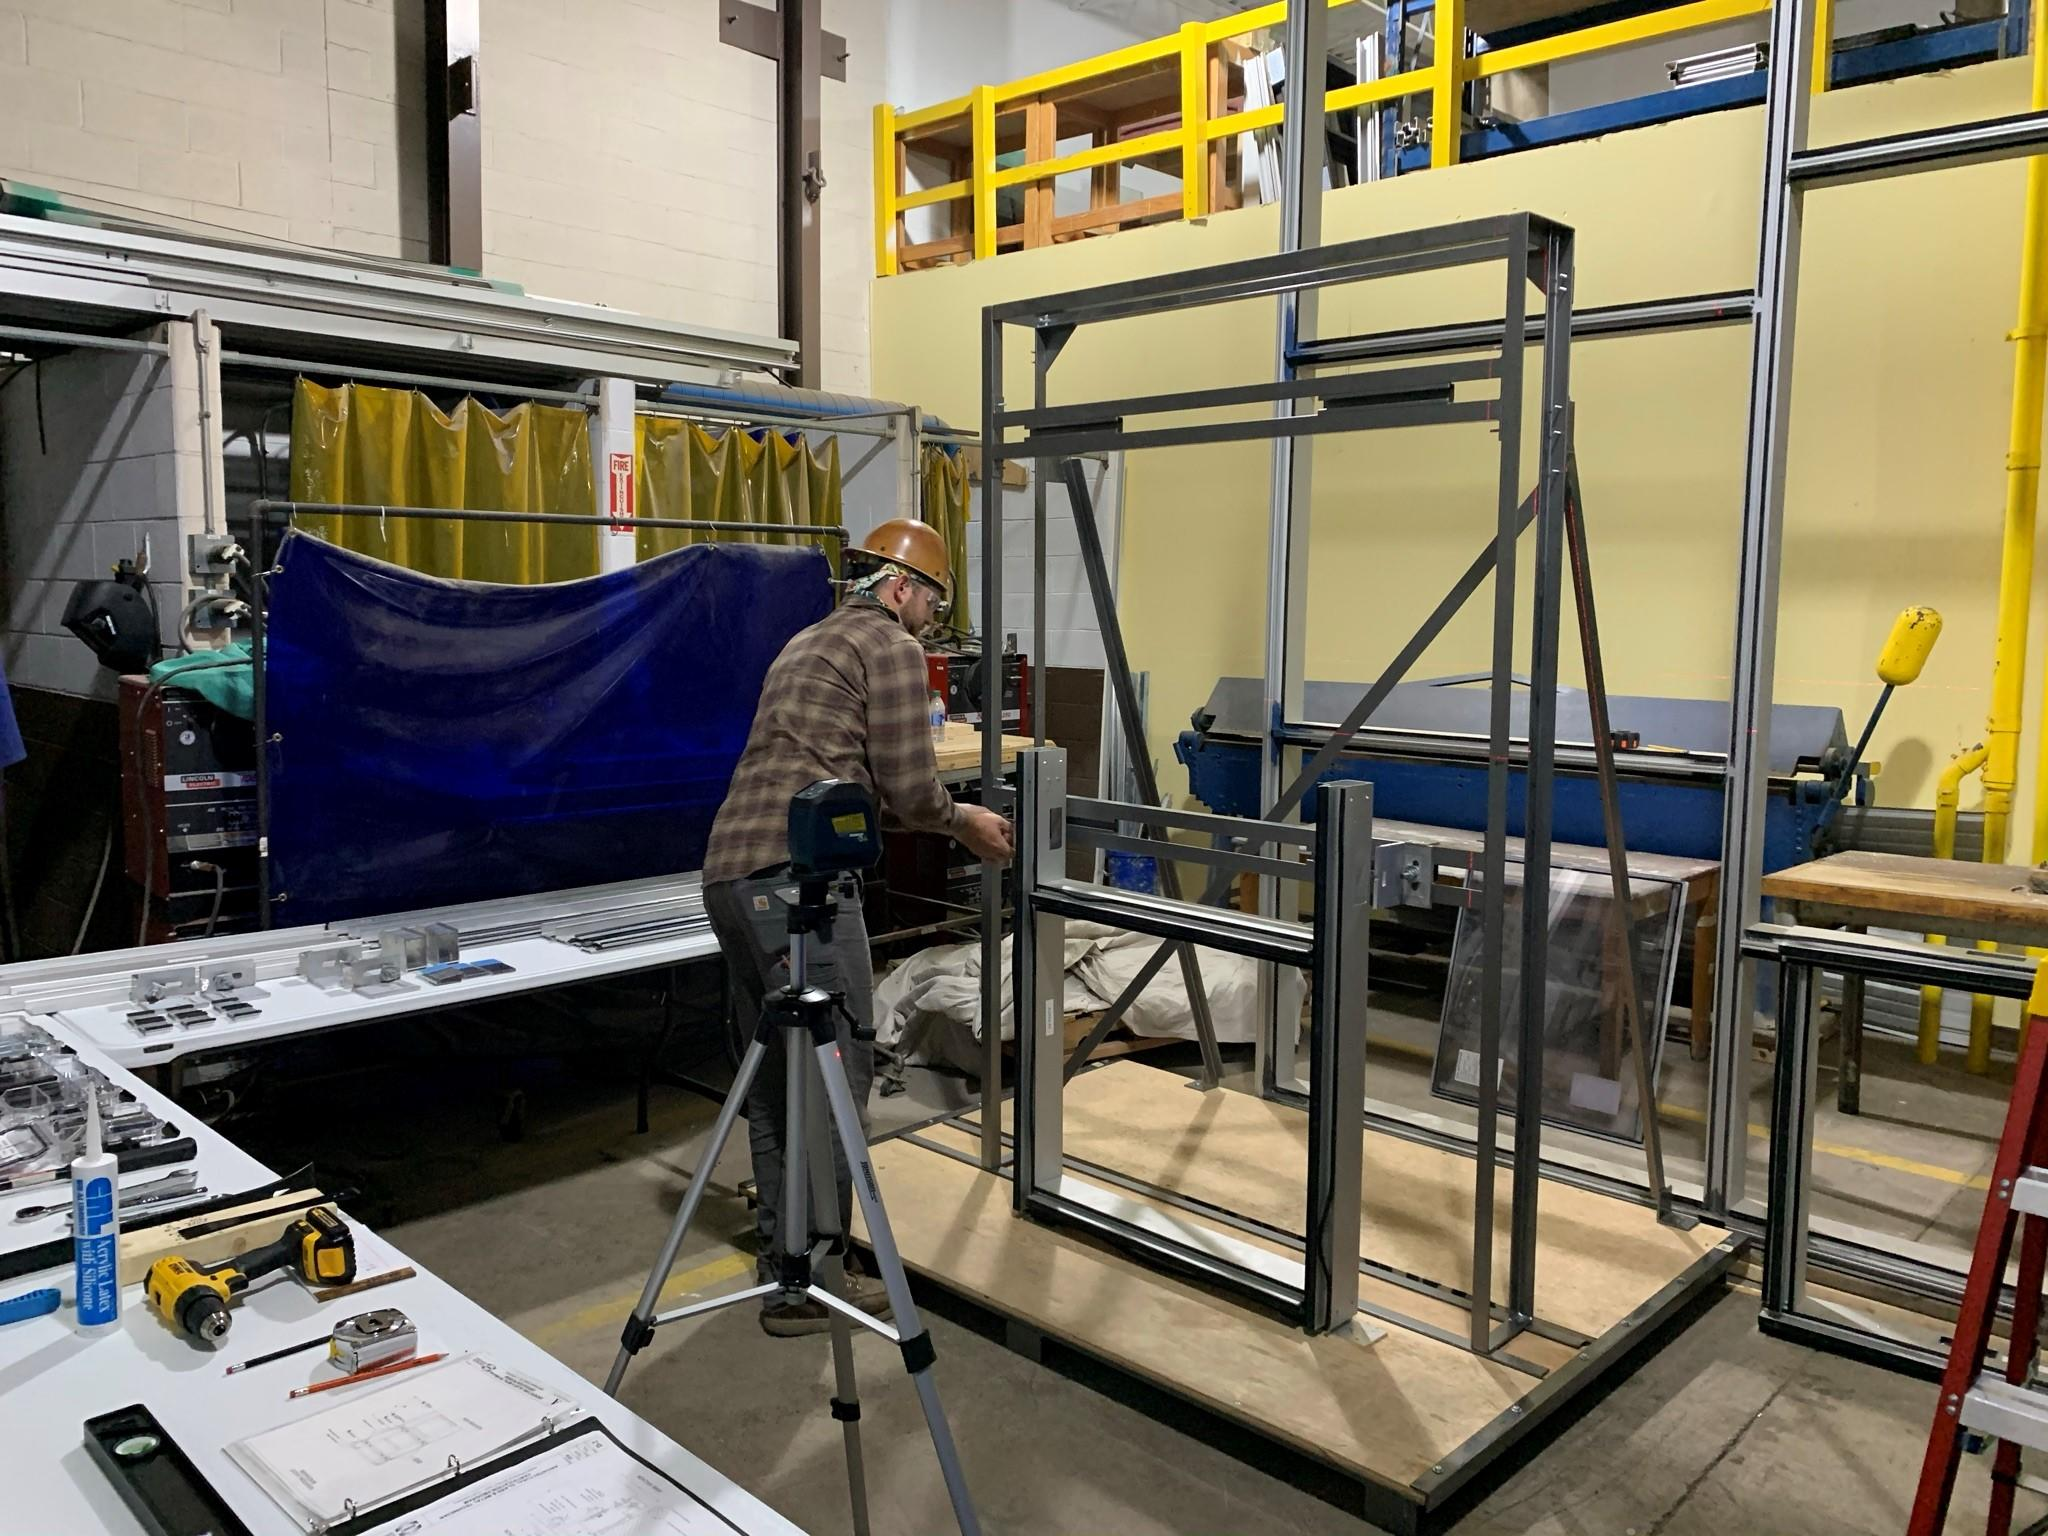 AGMT Glazier Certification Testing Resumes